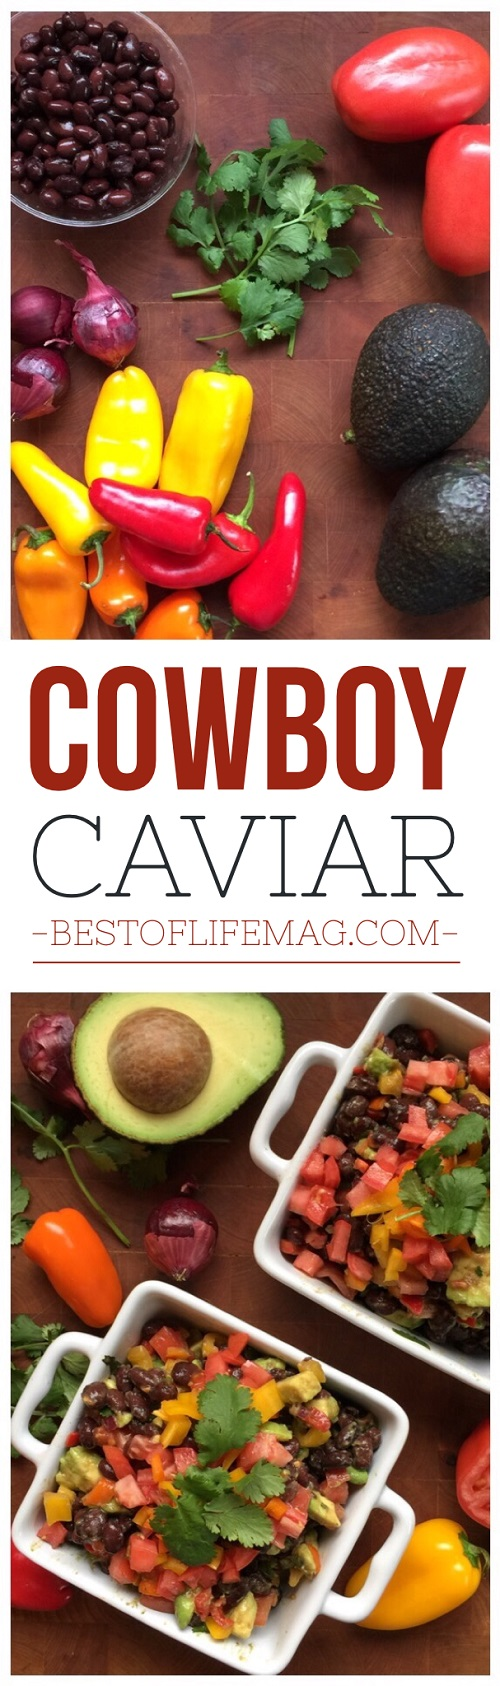 This Cowboy Caviar recipe is dairy free, easy to make, and so healthy! It can be eaten alone, on top of salads, or with chips and is an easy favorite!